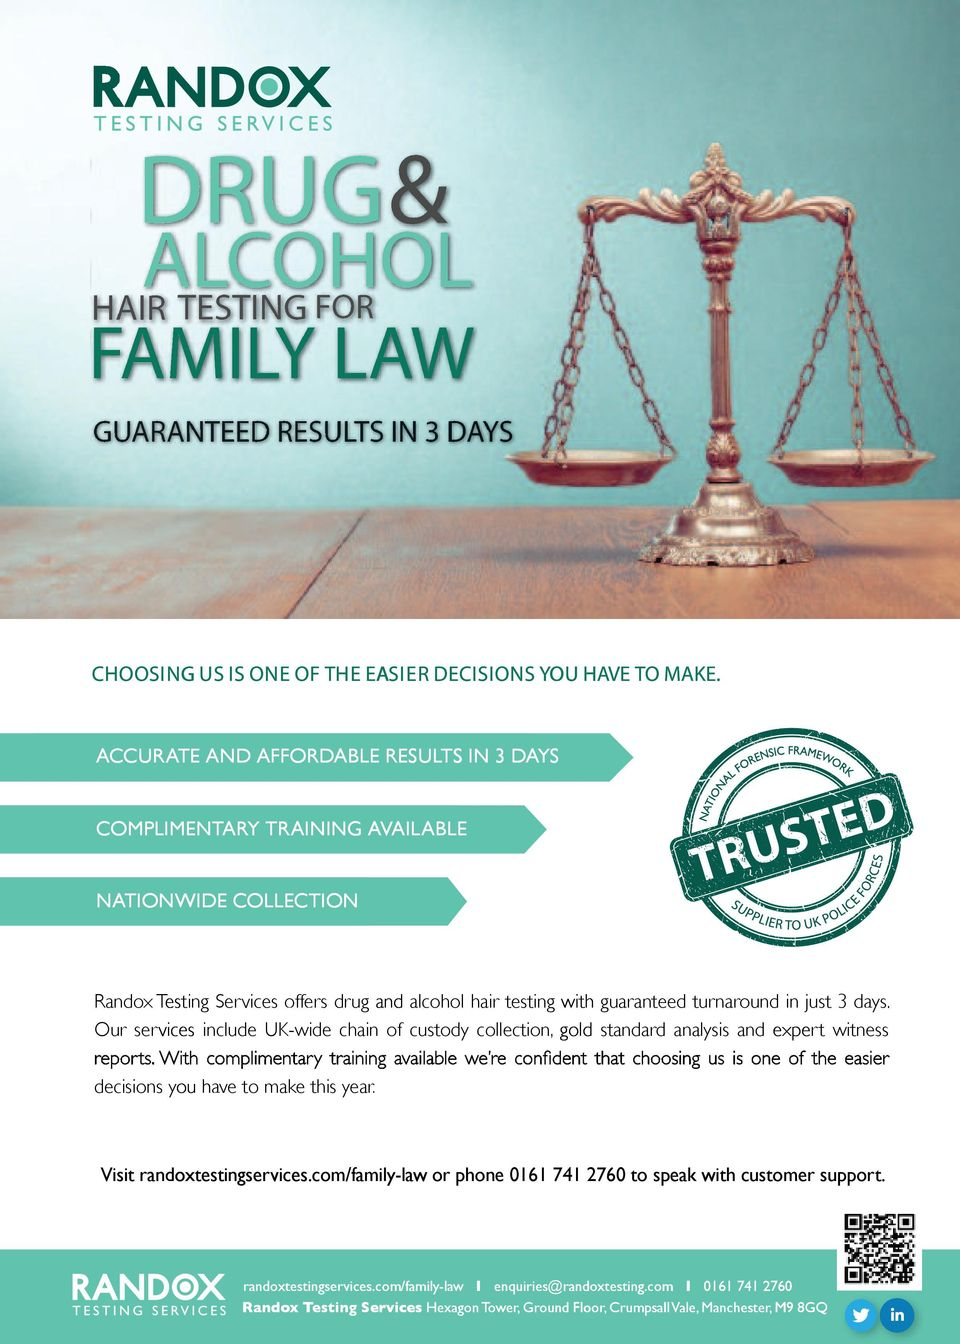 drug and alcohol hair testing with guaranteed turnaround chain of custody collection, gold standard analysis and in just 3 days.